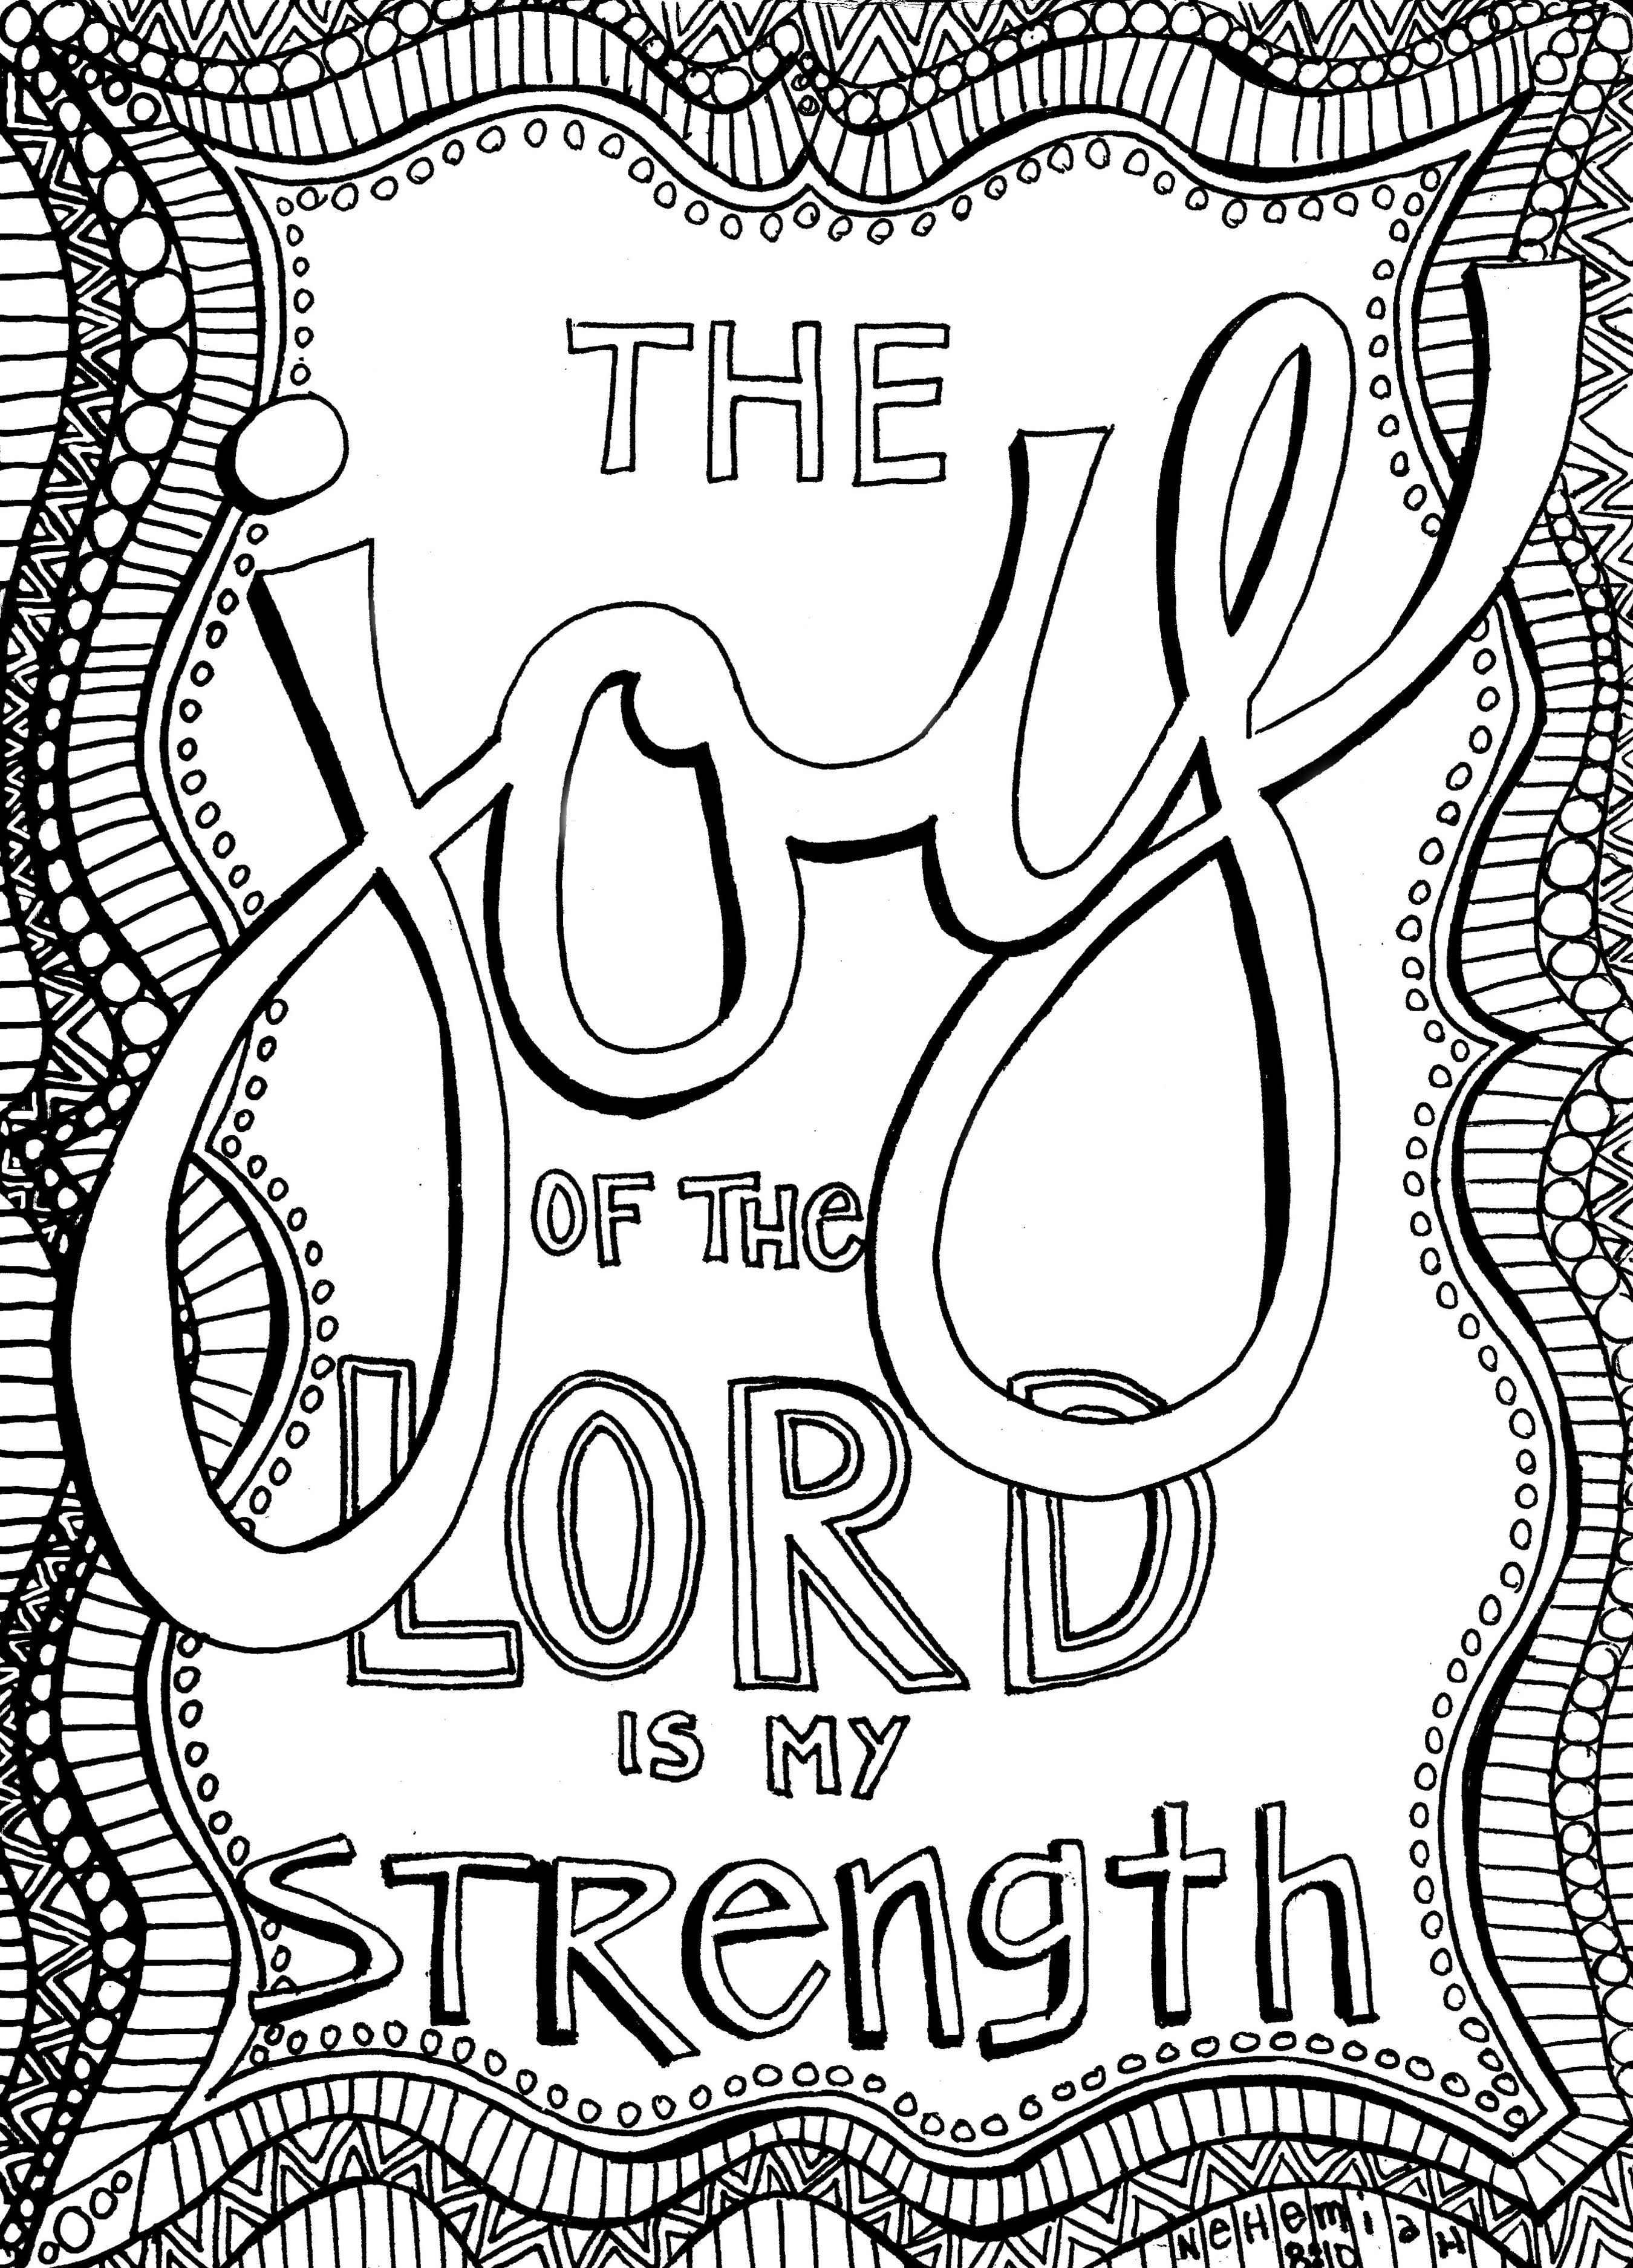 free bible verse coloring pages scripture doodles from victory road bible verse bible coloring free pages verse